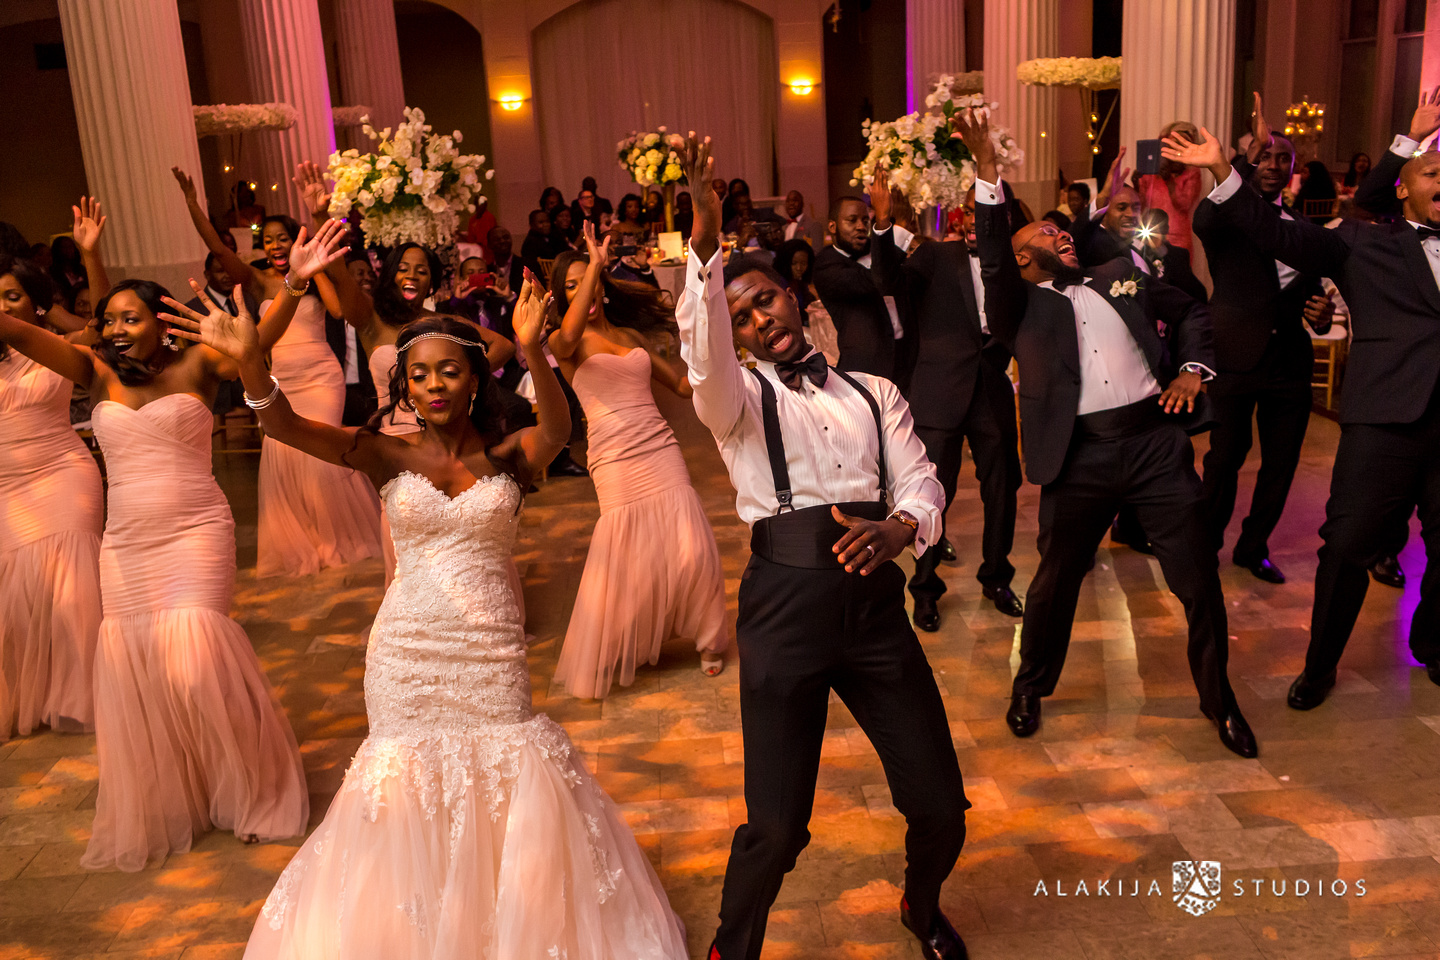 performance by the bridal party